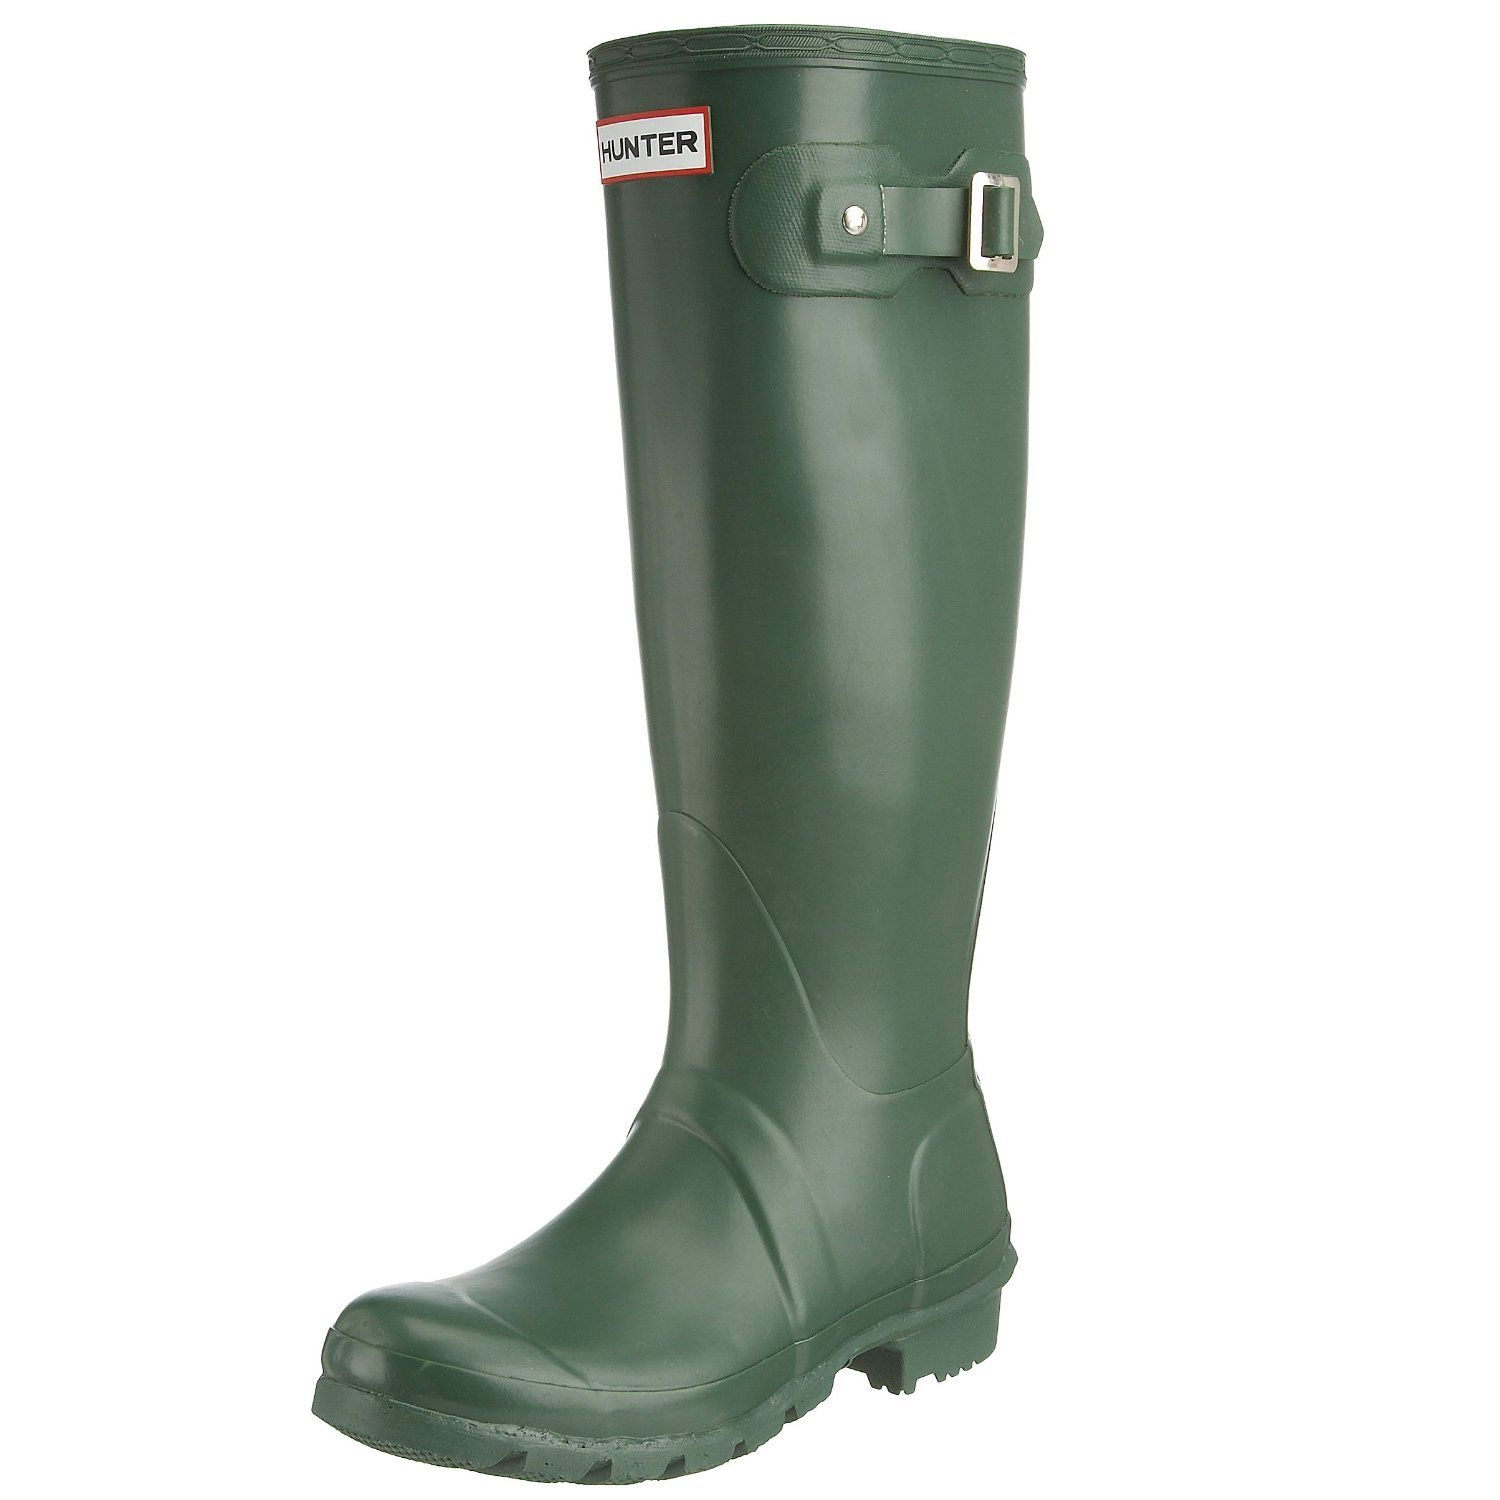 Wellies Original Gloss Tall Green Wellington Hunter- Green boots